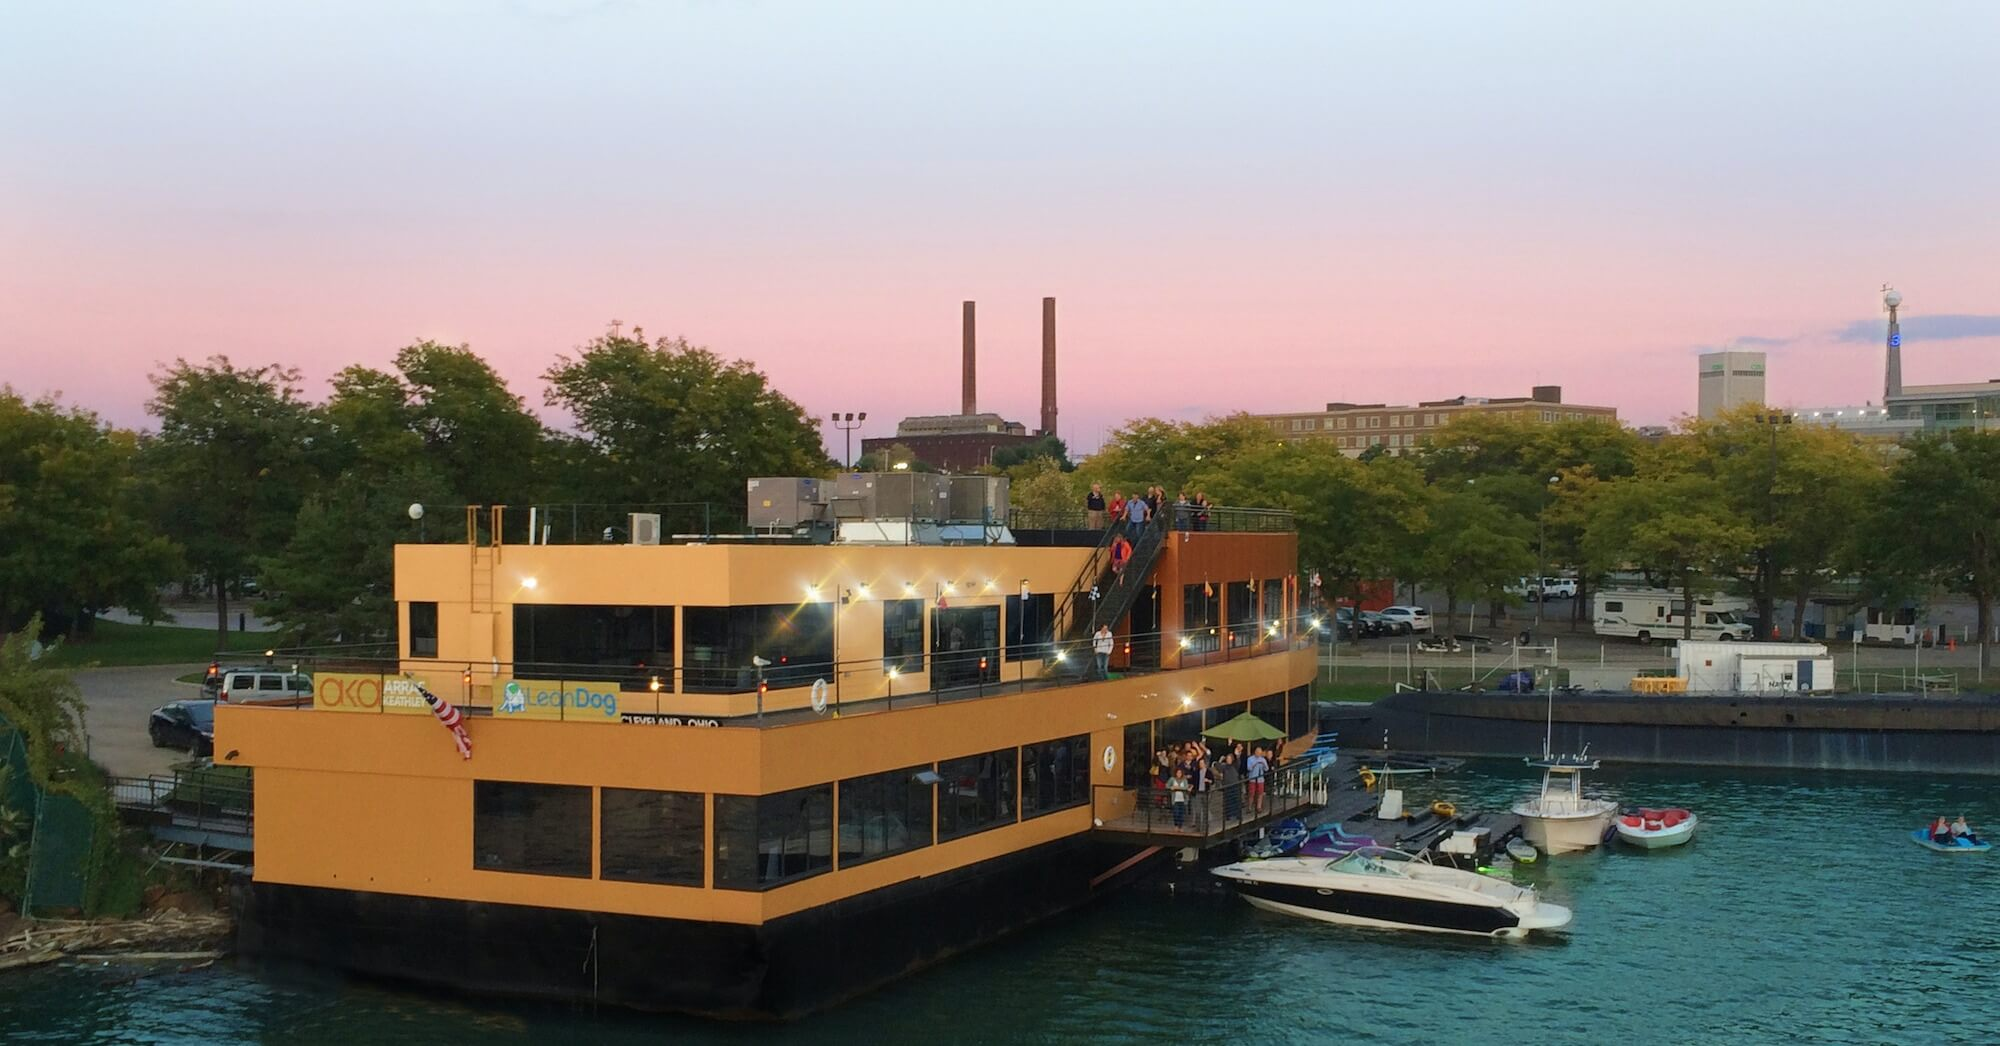 The LeanDog Boat - Office and Event Venue - Barge 225